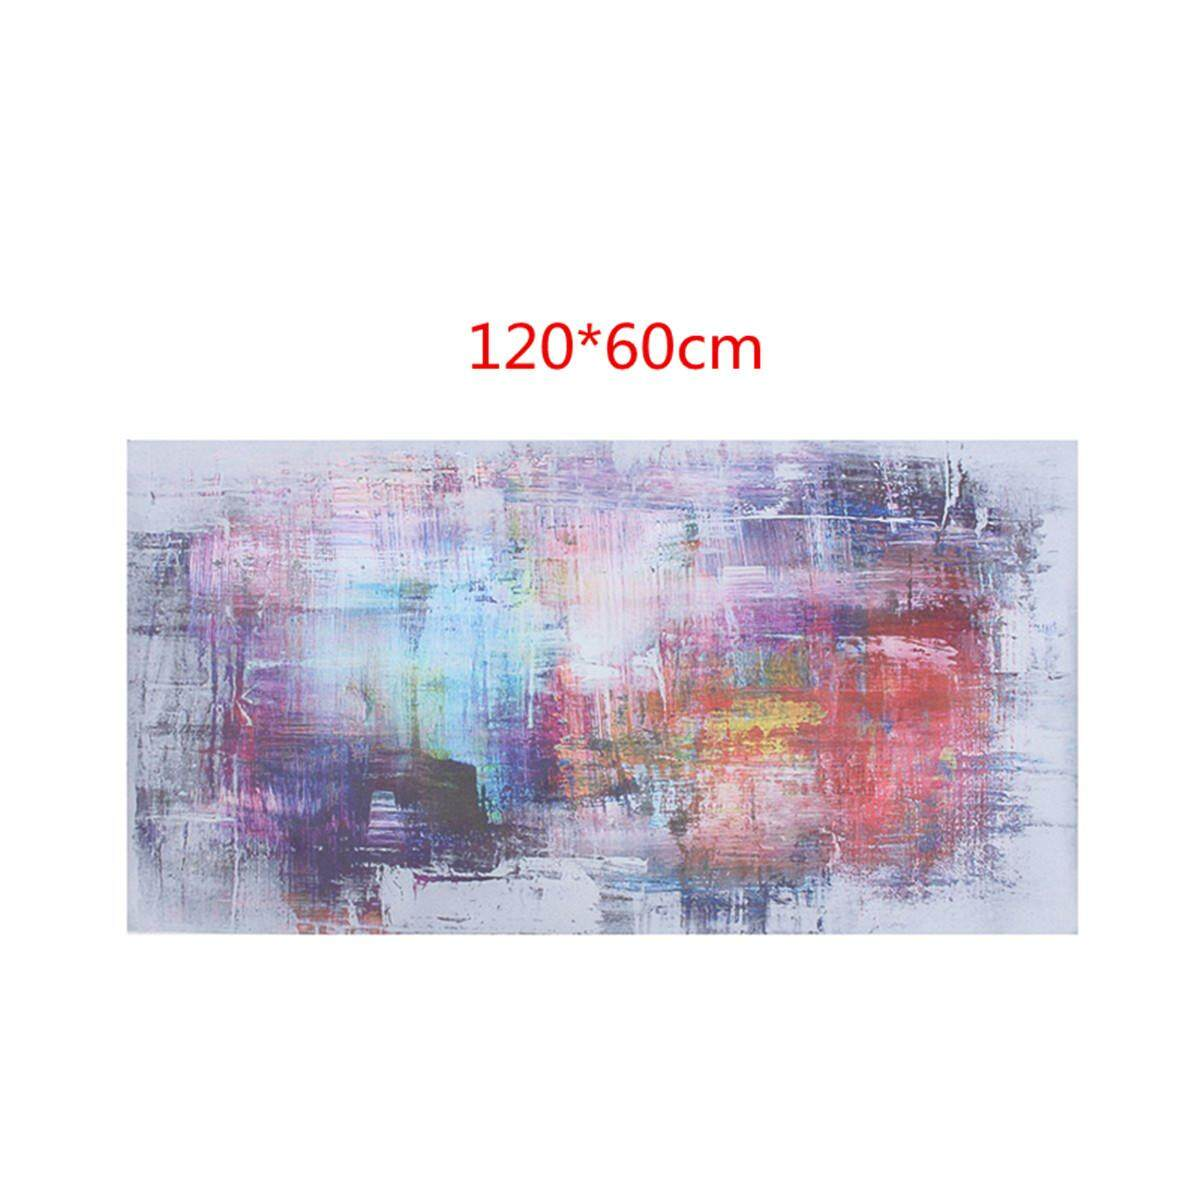 Abstract Modern Art Oil Canvas Print Painting Wall Picture Home Decor #120cm x 60cm